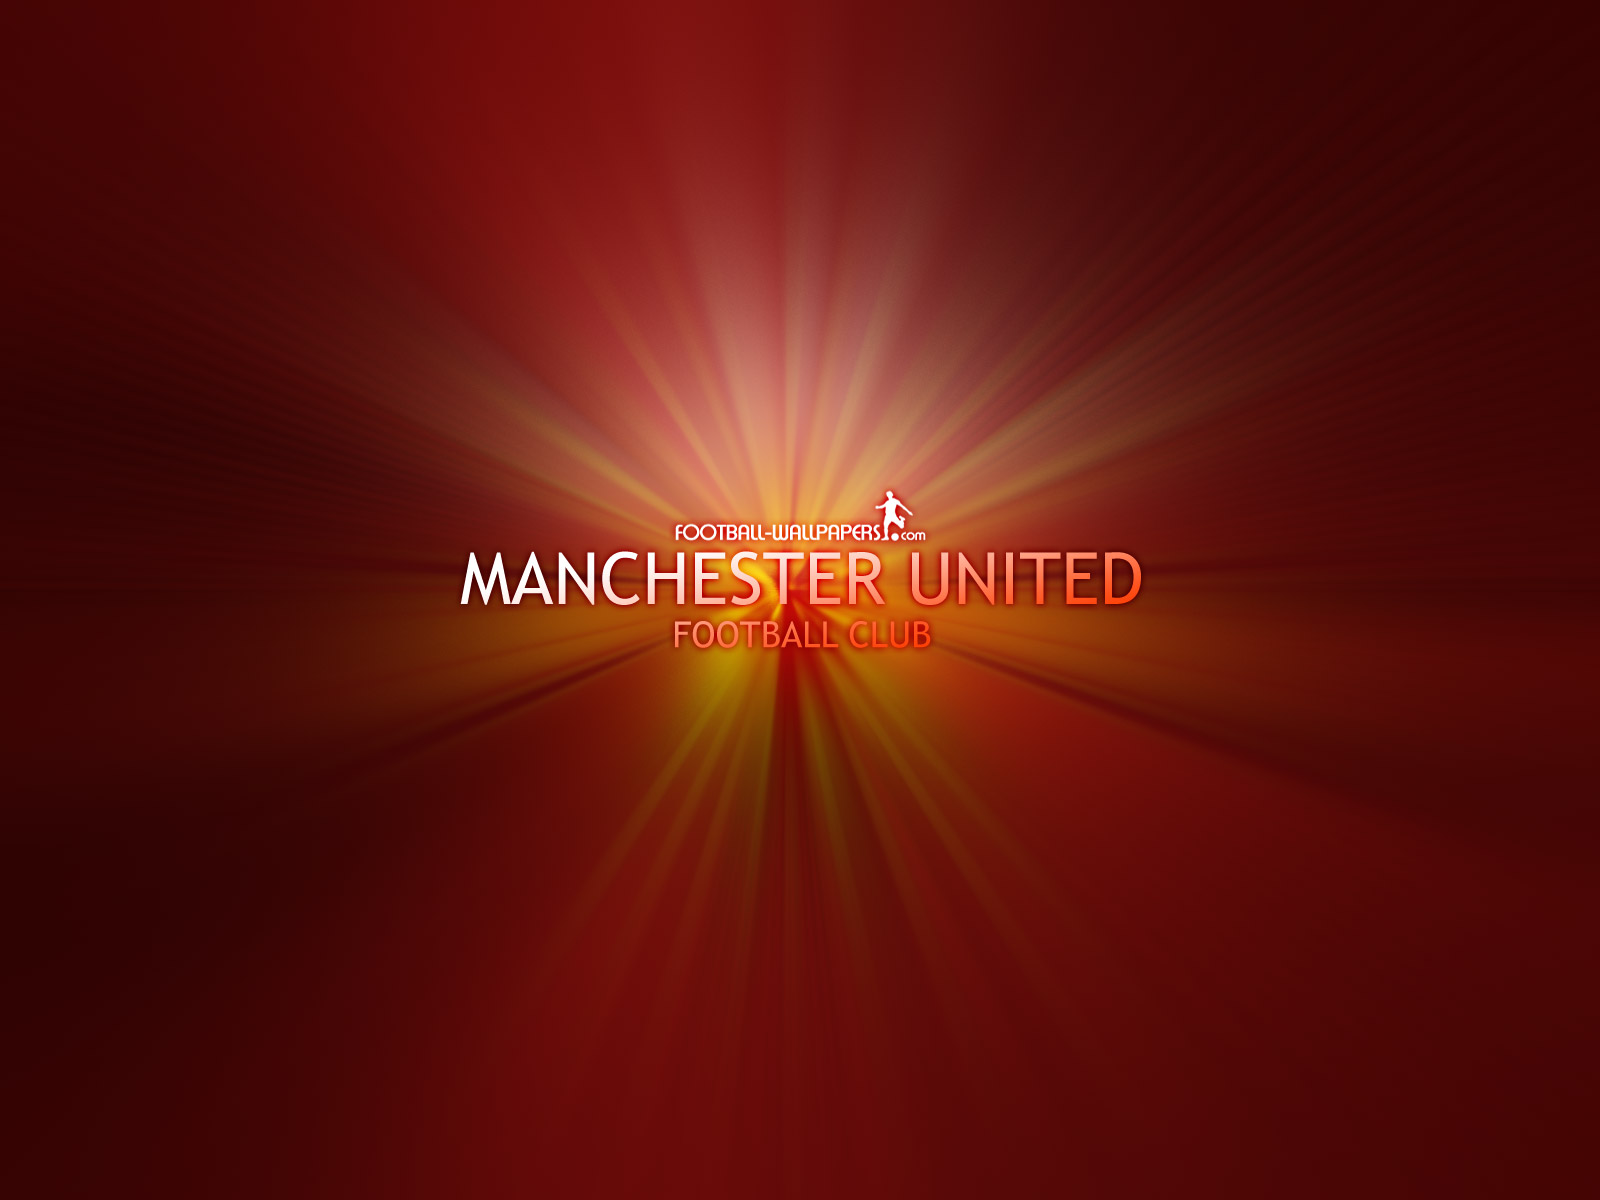 Manchester united wallpaper hd 2013 29 football Manchester united 1600x1200